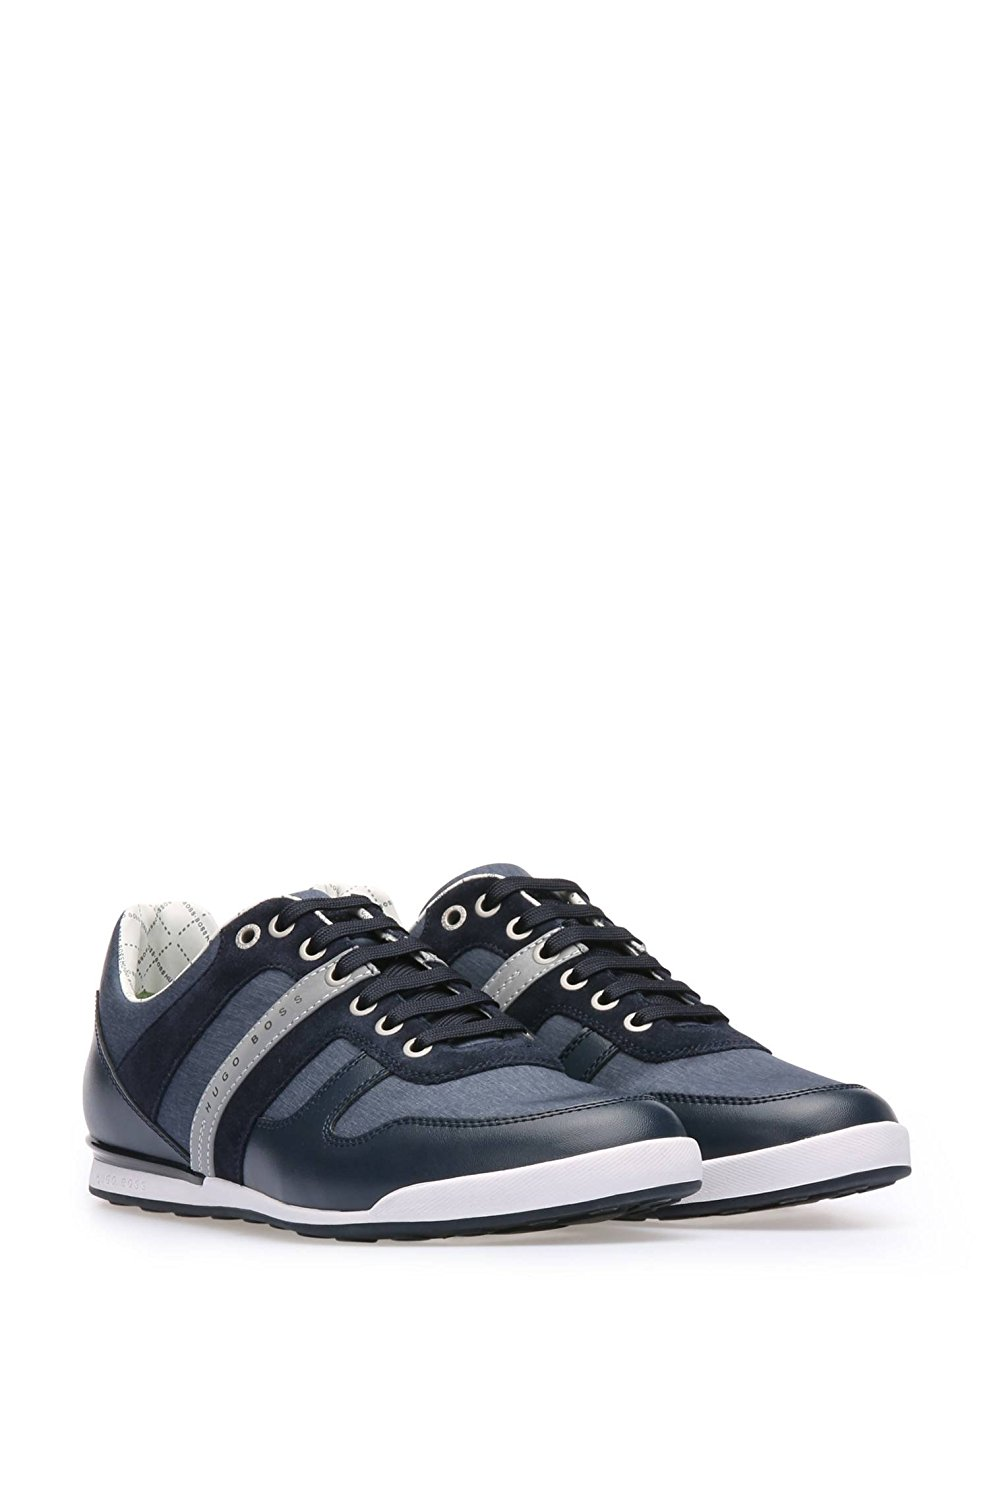 1ff3d7cc5ed Cheap Hugo Boss Shoes Sale, find Hugo Boss Shoes Sale deals on line ...